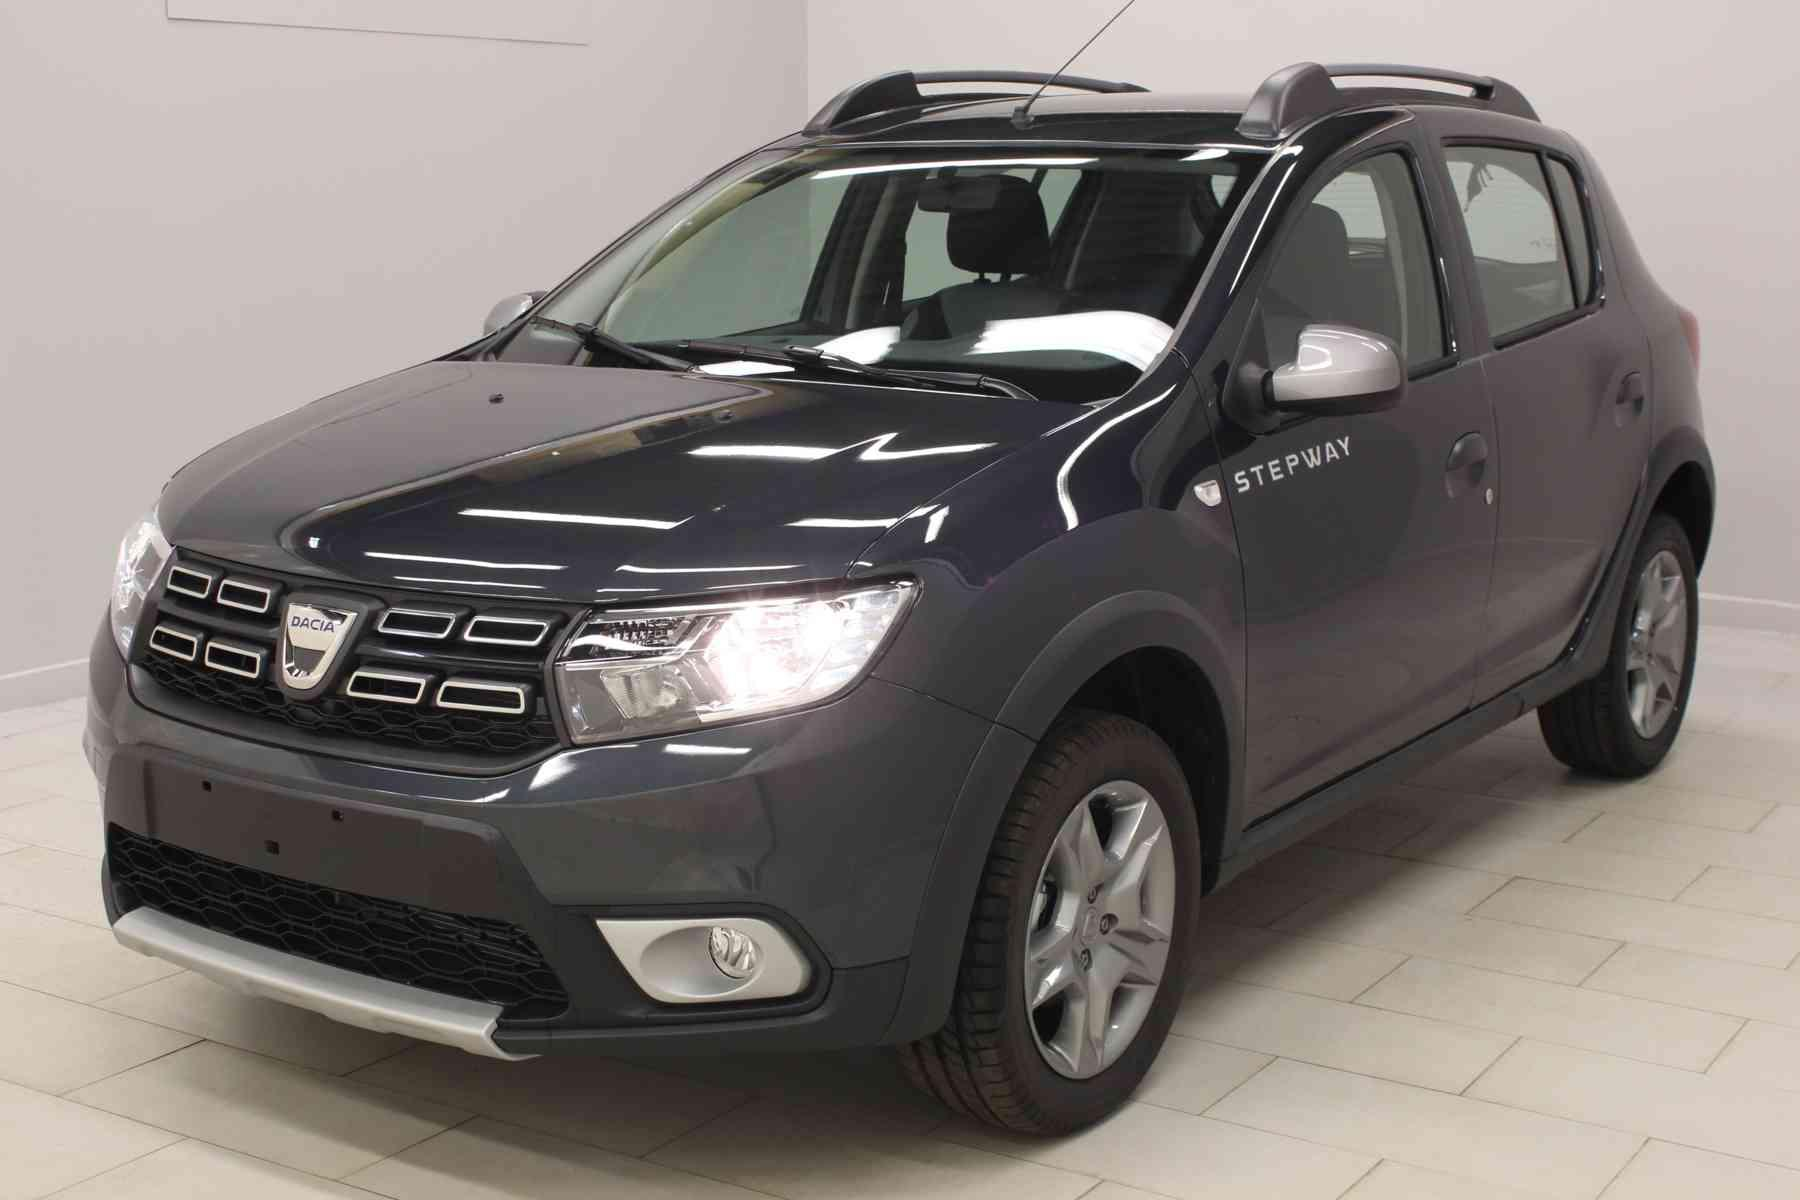 dacia sandero nouvelle dci 90 stepway gris com te cam ra de recul roue de secours avec. Black Bedroom Furniture Sets. Home Design Ideas